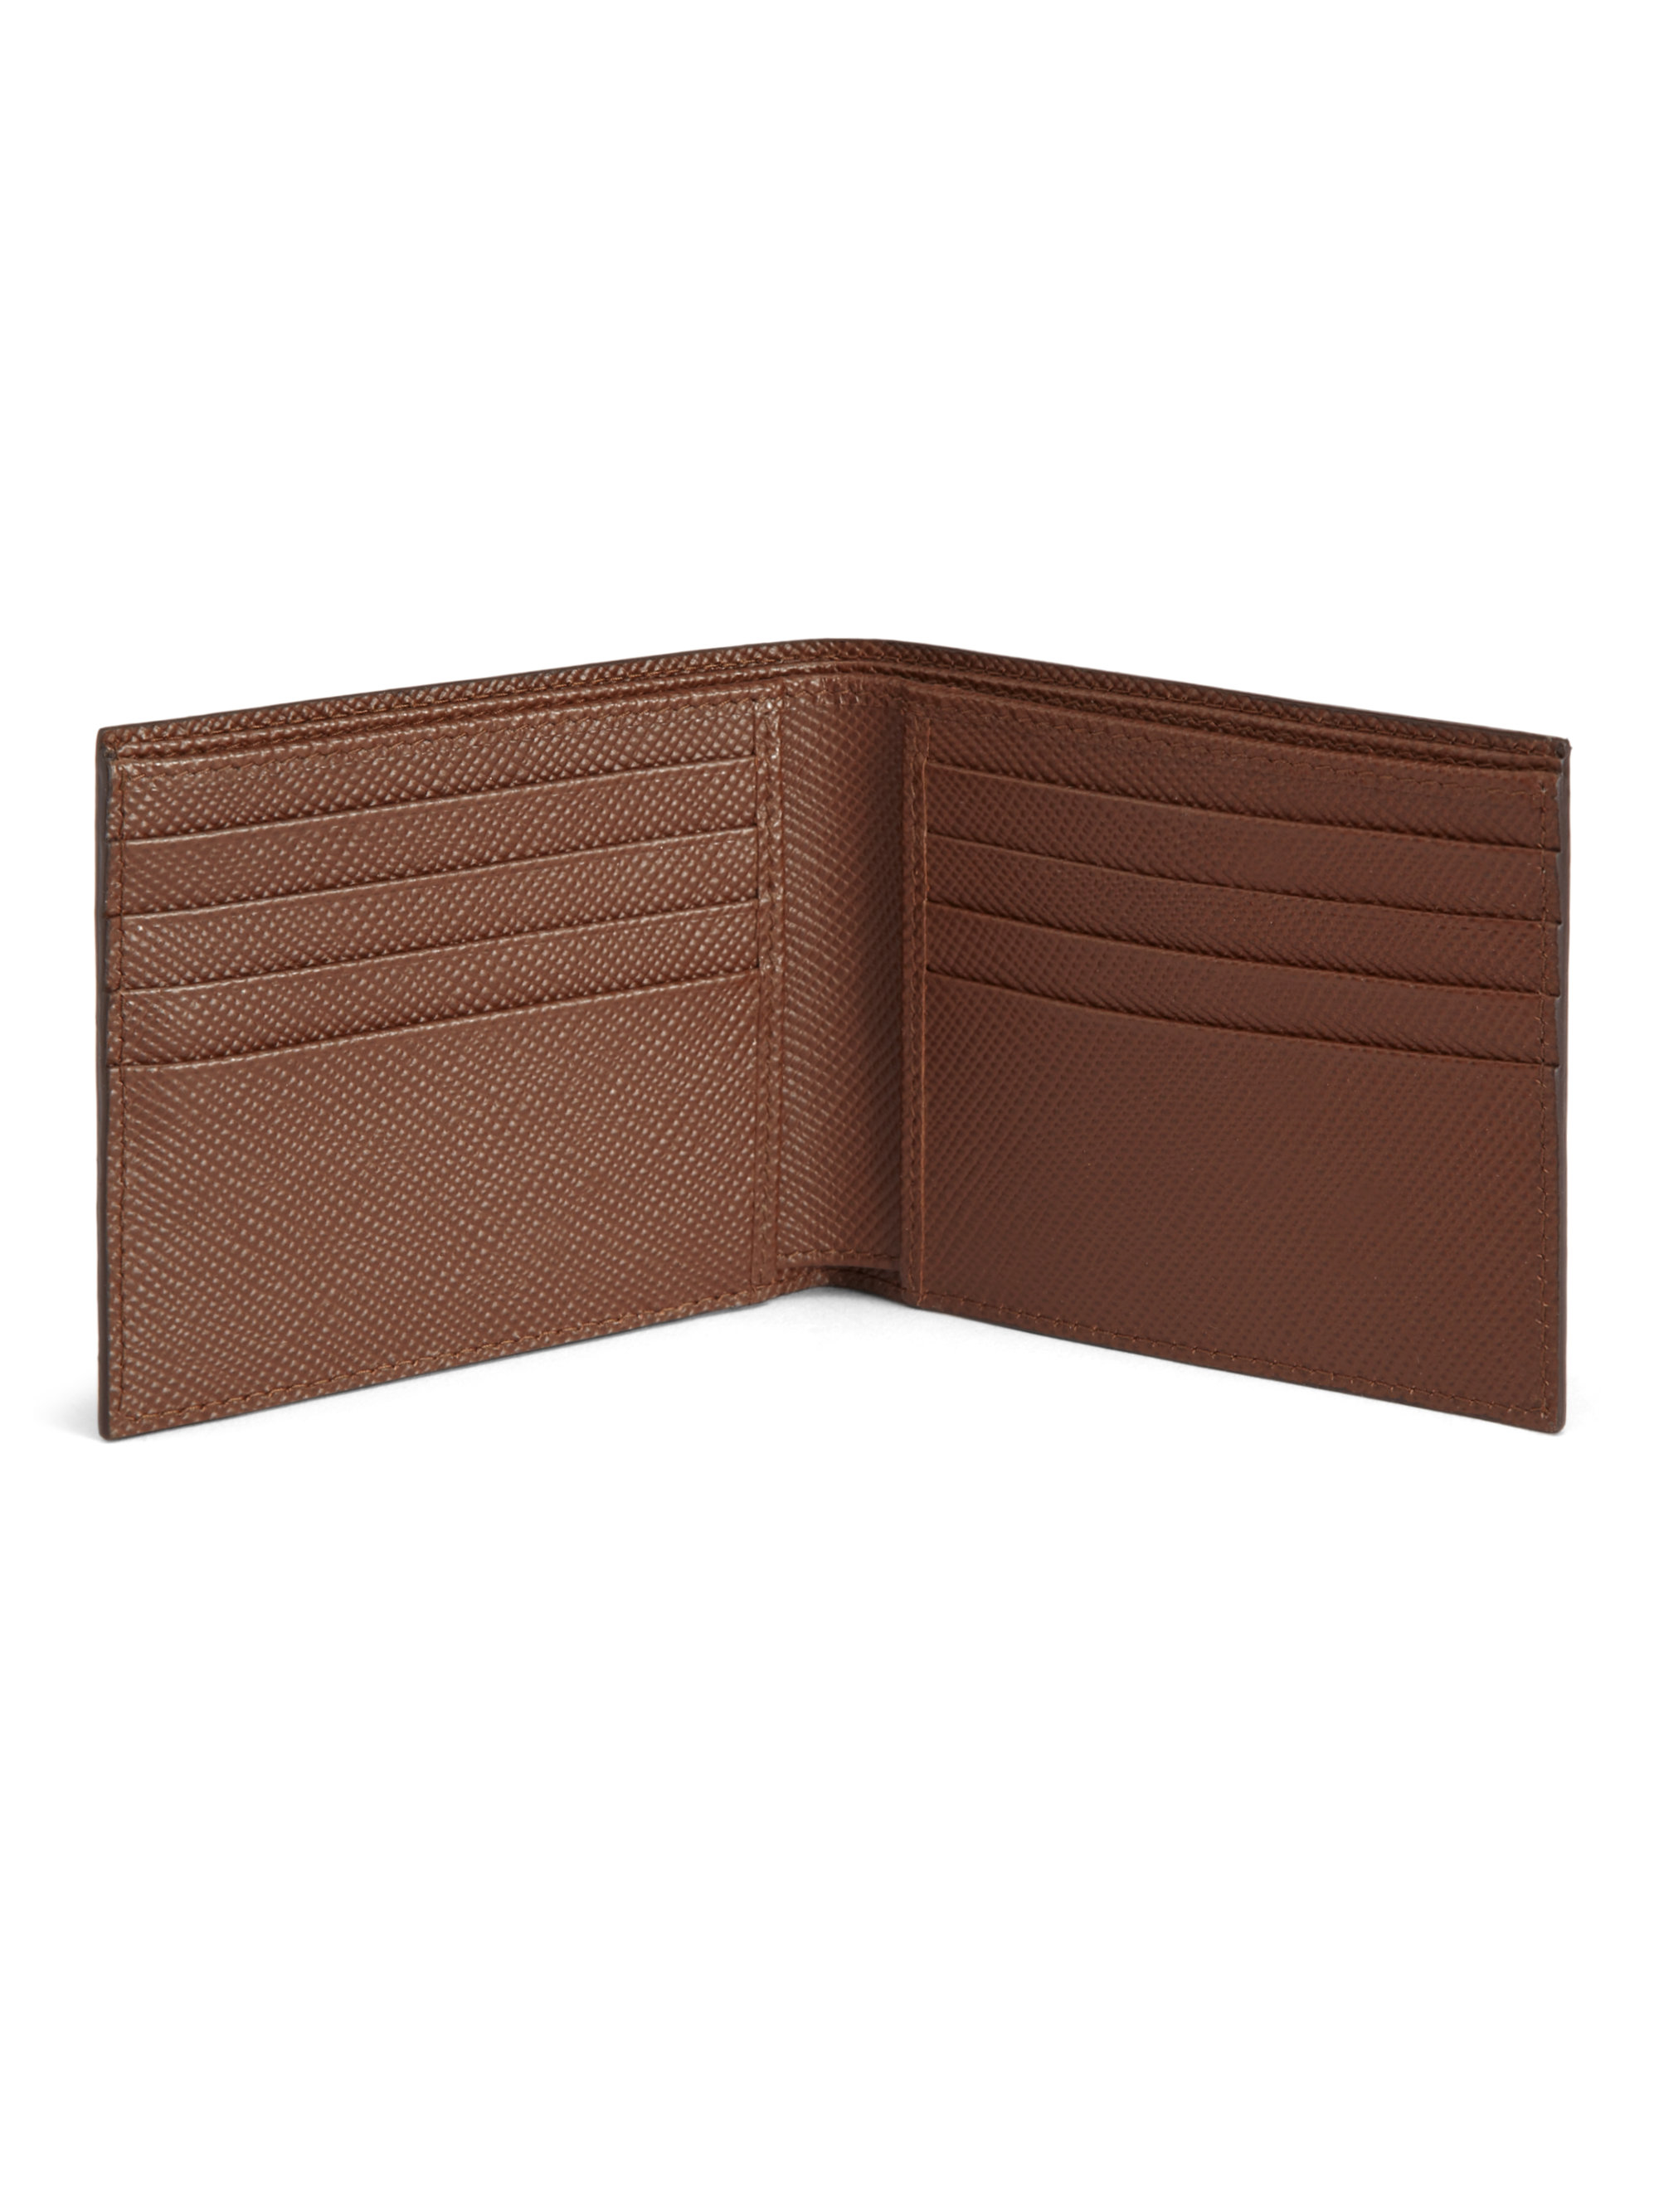 0c88a6053861 top quality lyst prada saffiano cuir striped bifold wallet in brown for men  4934a 70410